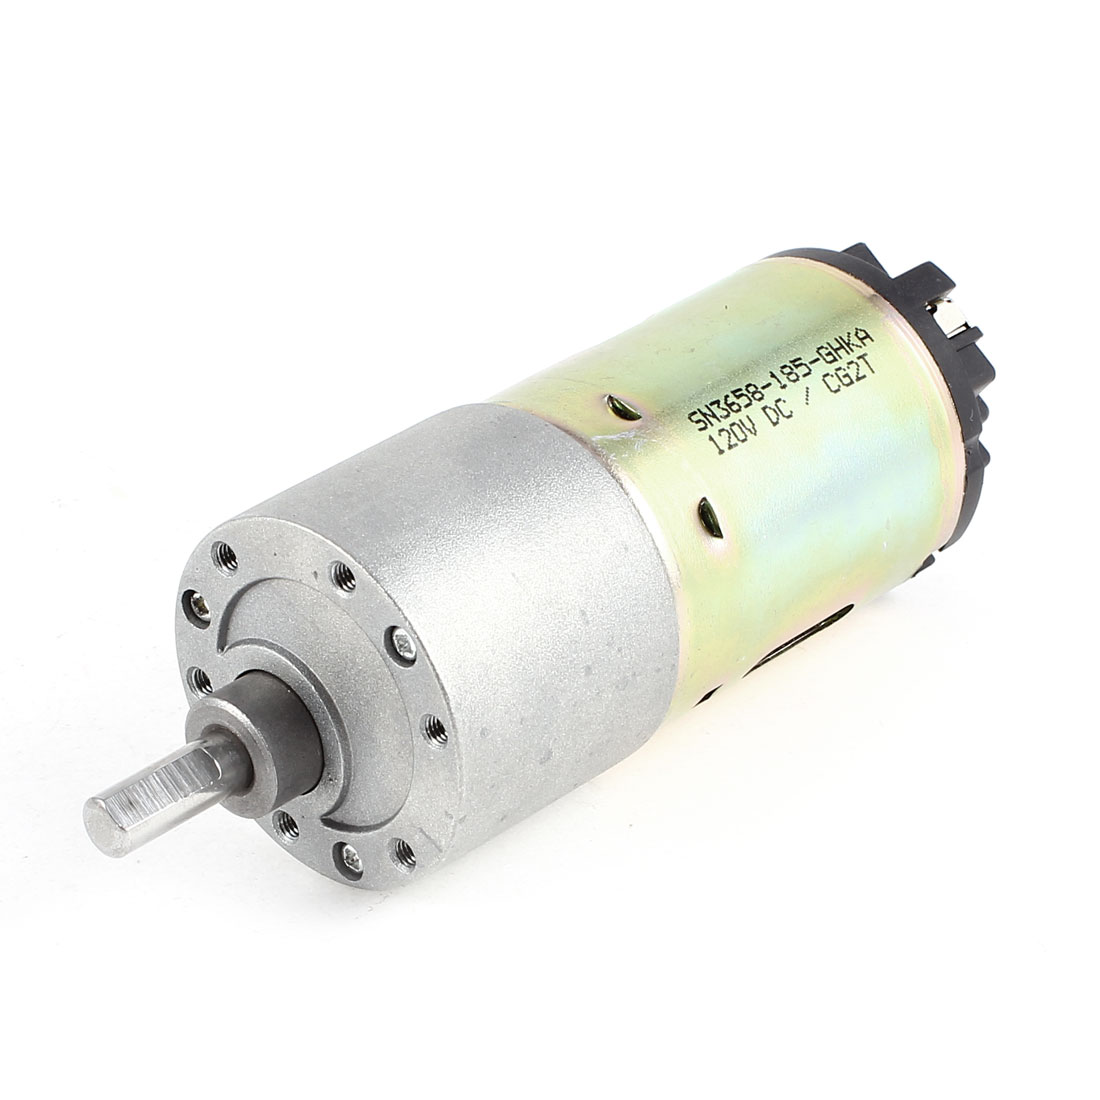 DC 12V 1RPM Metal 6mm Diameter Axle Electric Gear Box Speed Reduction Mini Motor